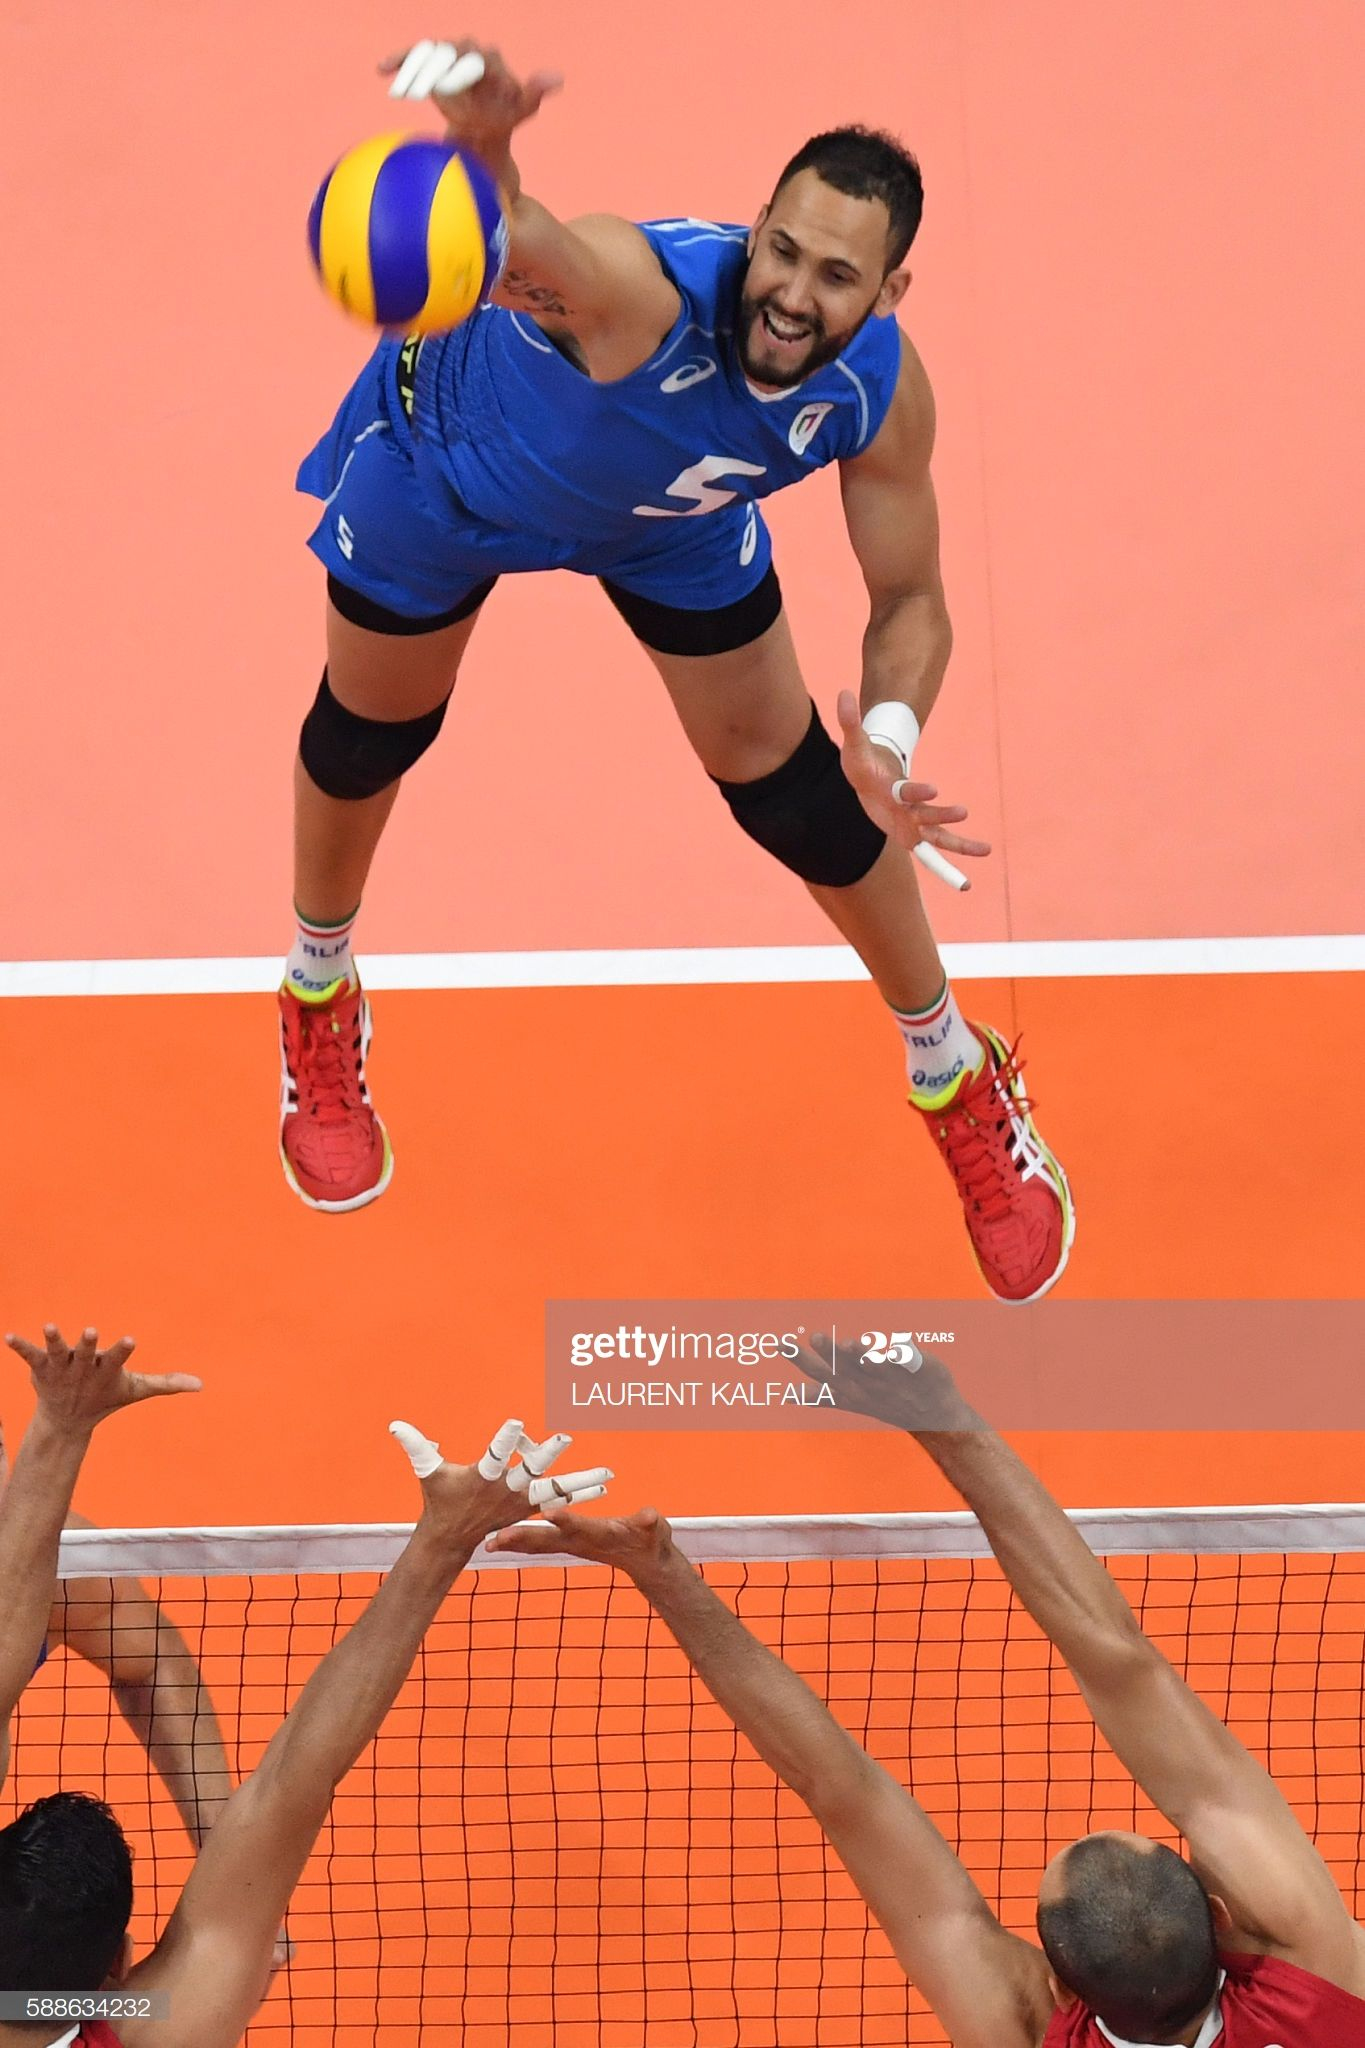 An Overview Shows Italy S Osmany Juantorena Spiking The Ball During In 2020 Rio Olympics 2016 Olympic Games 2016 Olympic Games